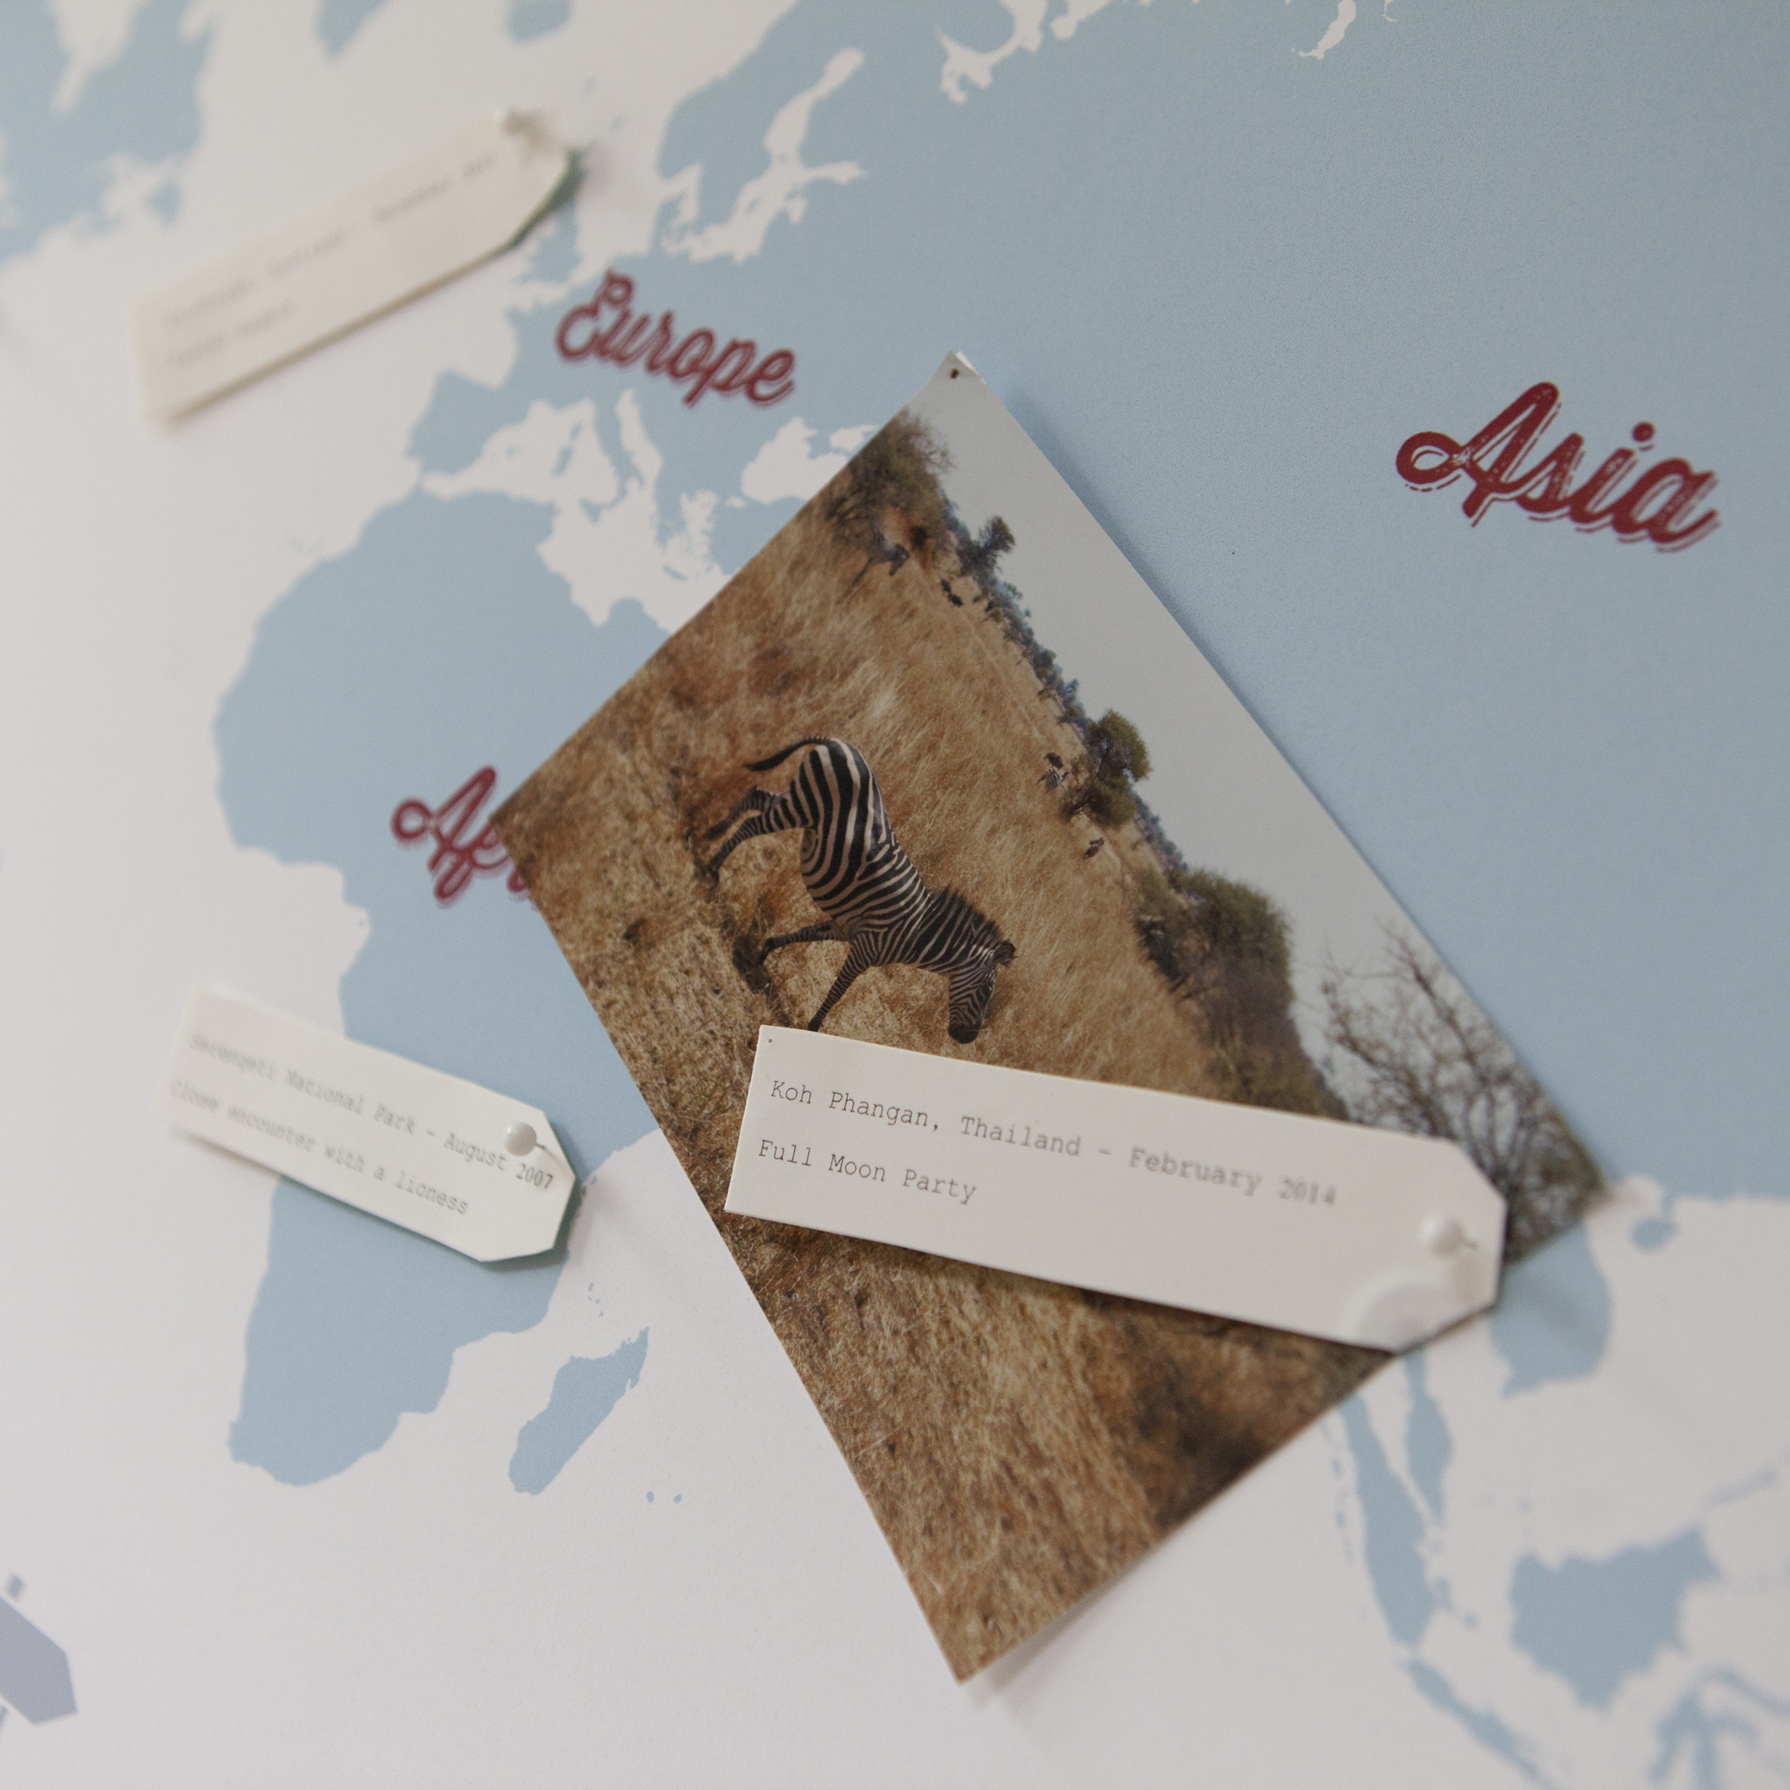 Personalise Your World and create your own travel story this